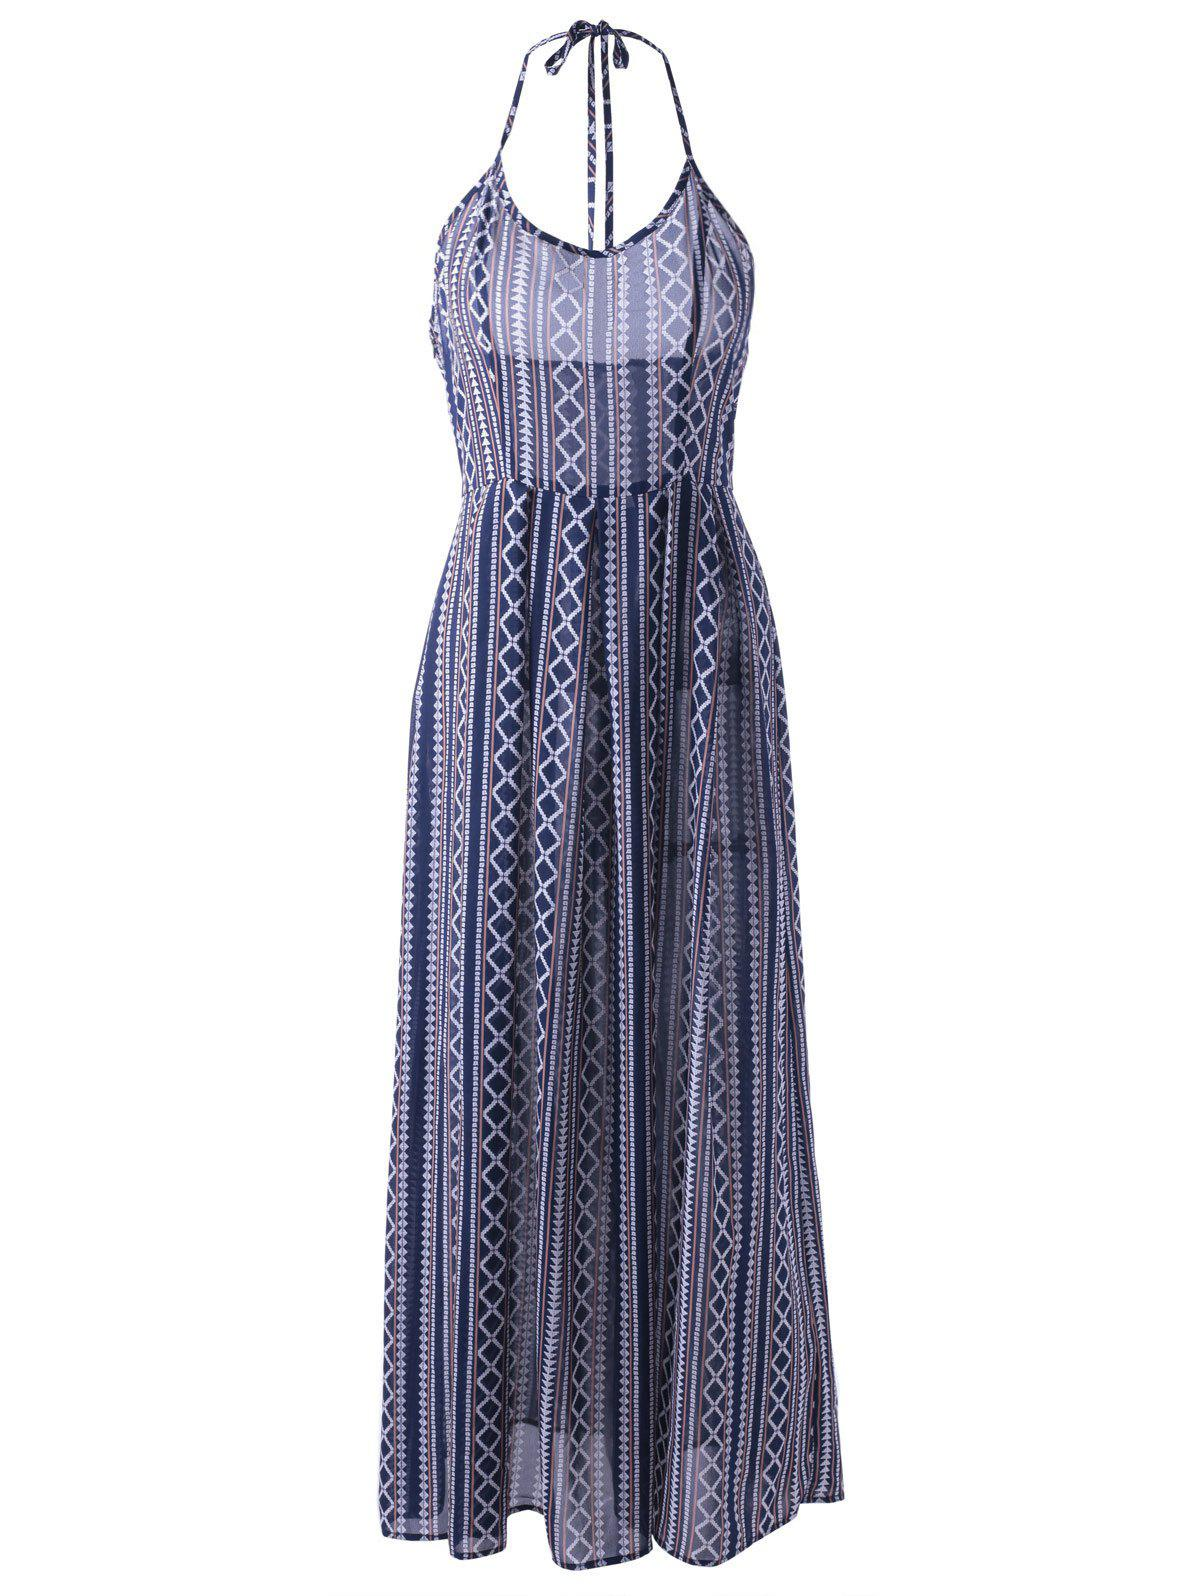 Ethnic Halter Backless Long Swing Dress DRESSFO